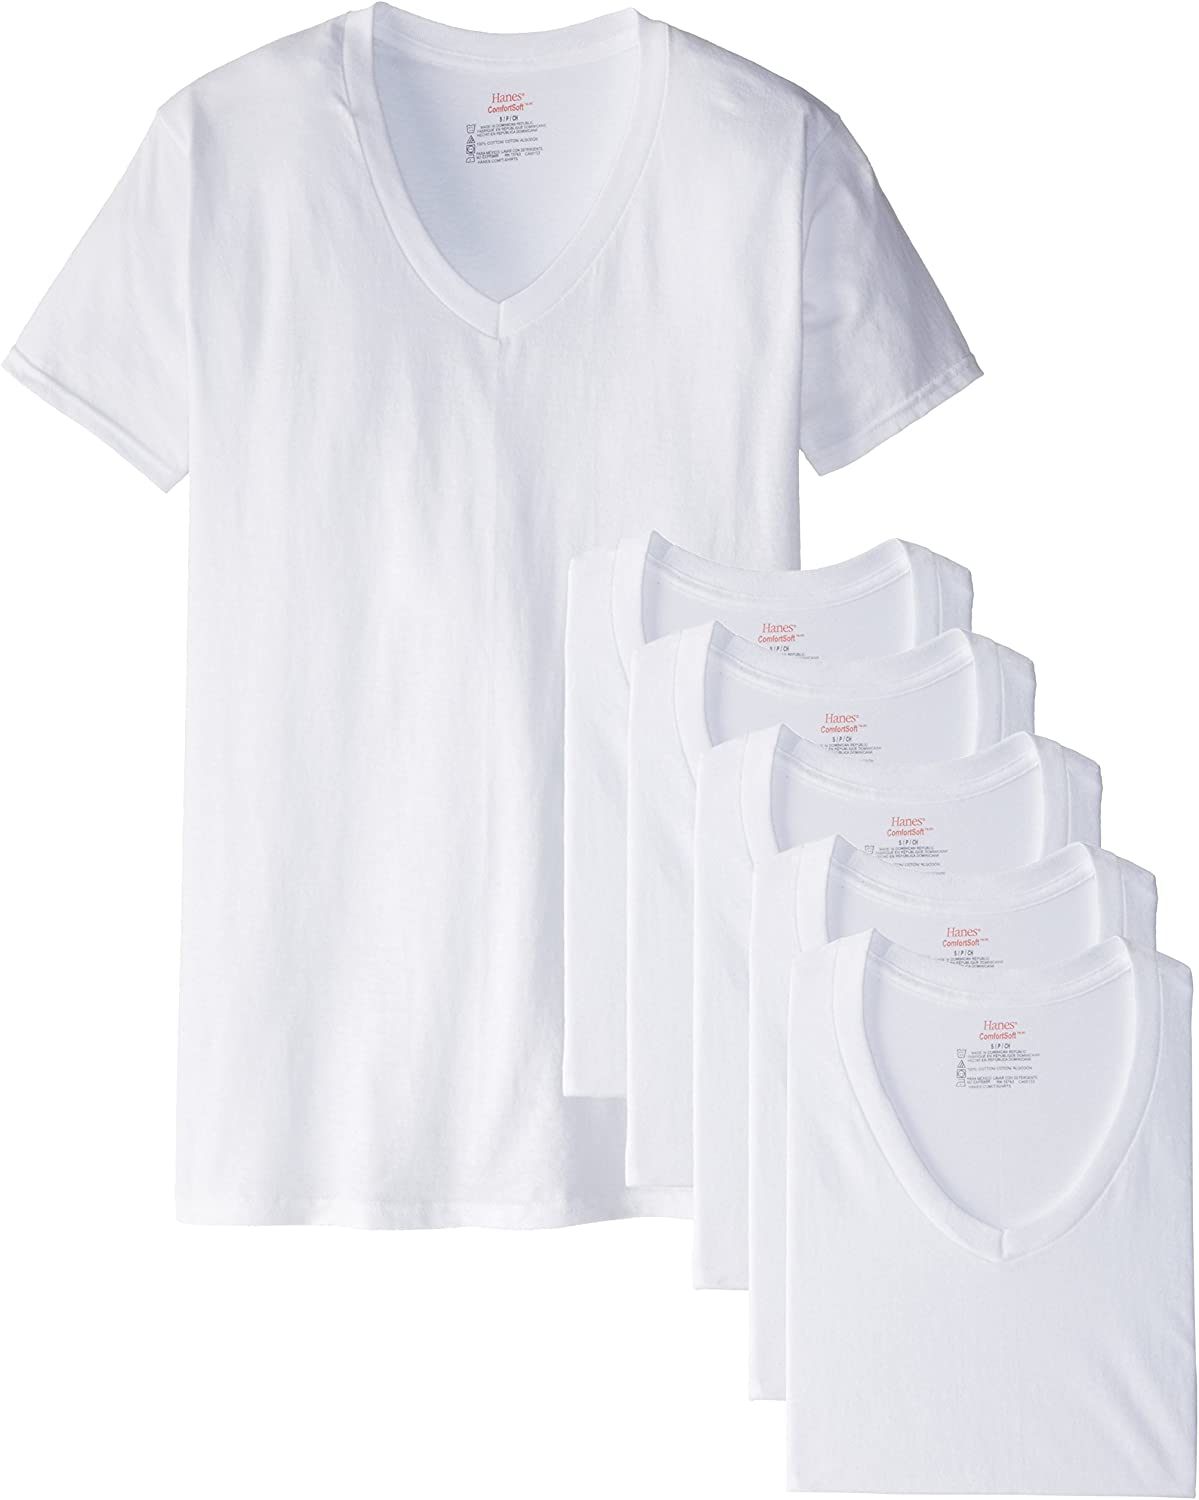 Hanes Men's White and Assorted V-Neck T-Shirts